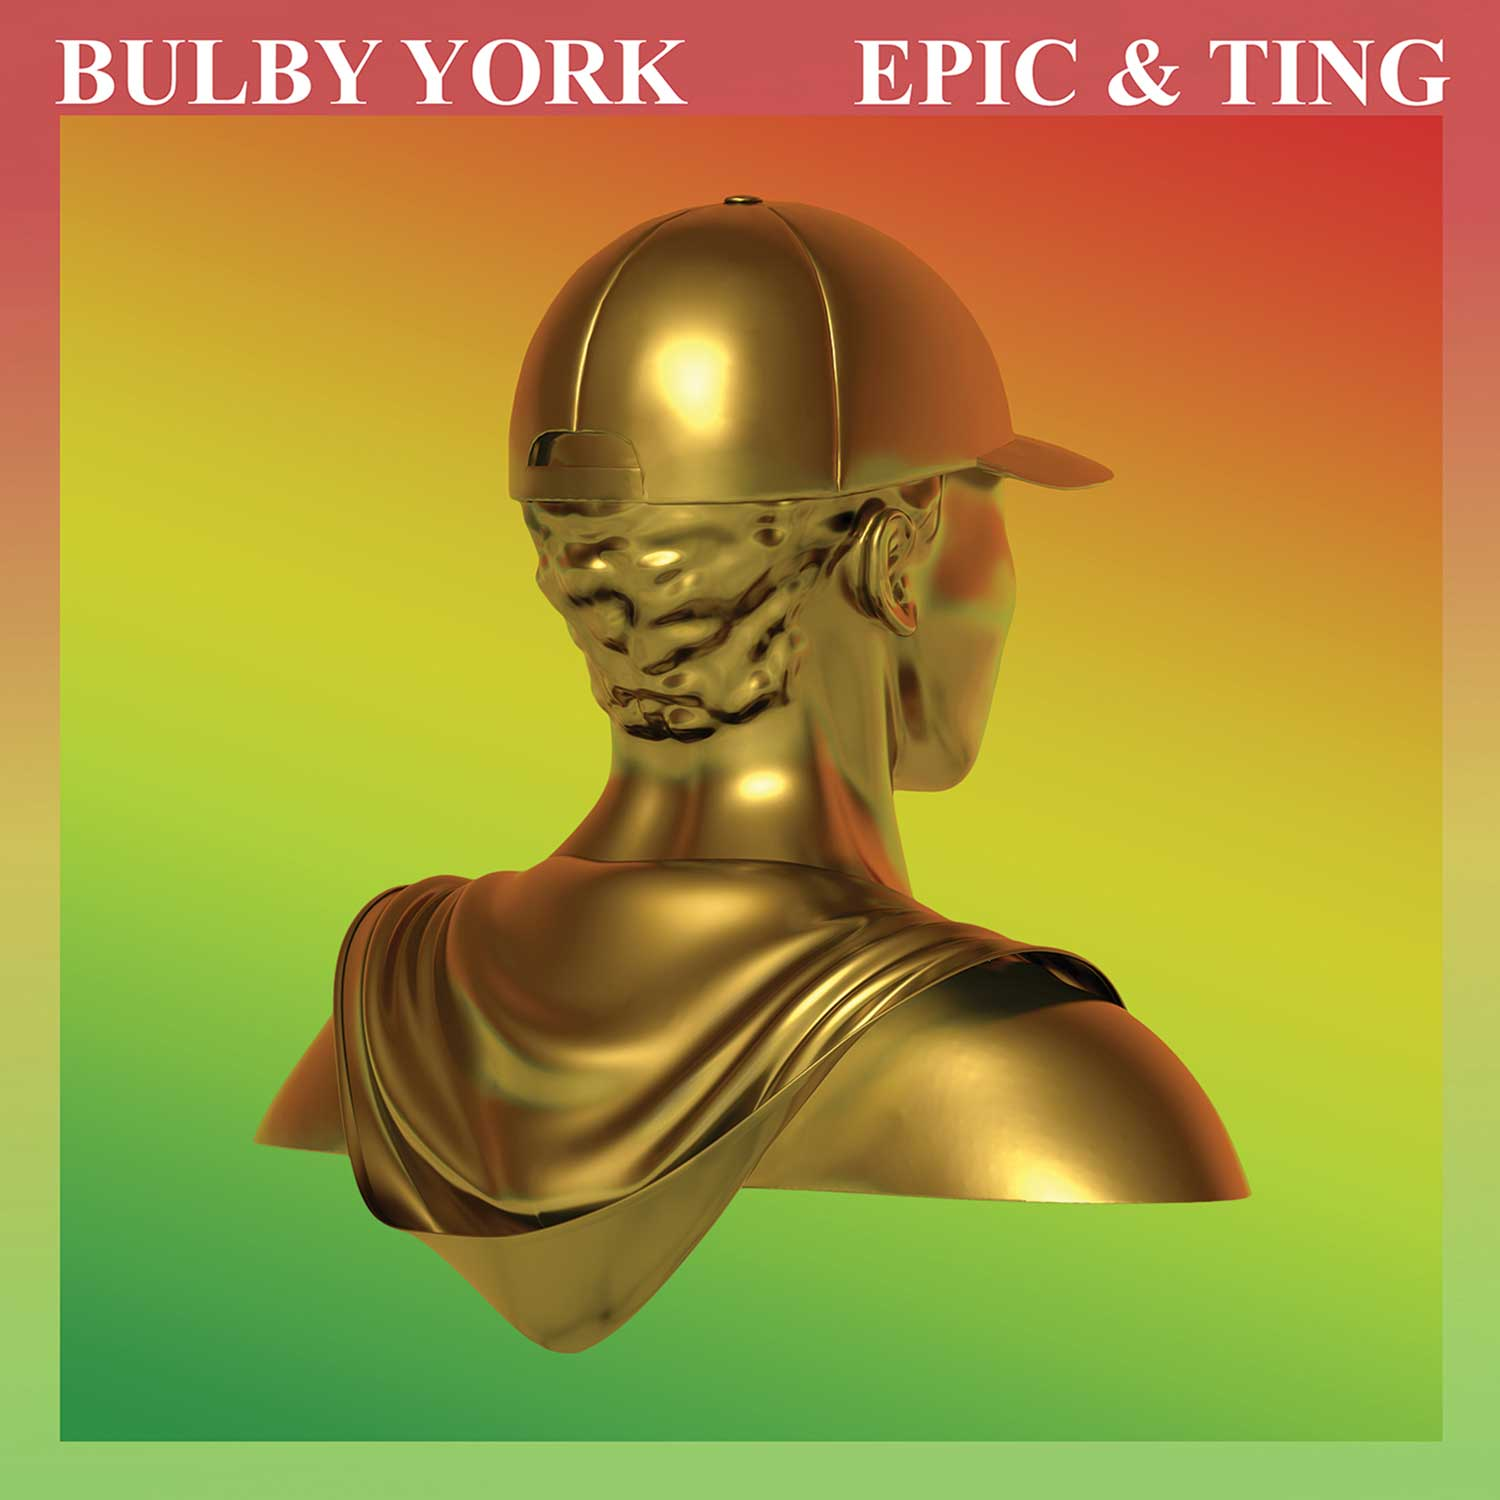 Epic & Ting – Bulby York